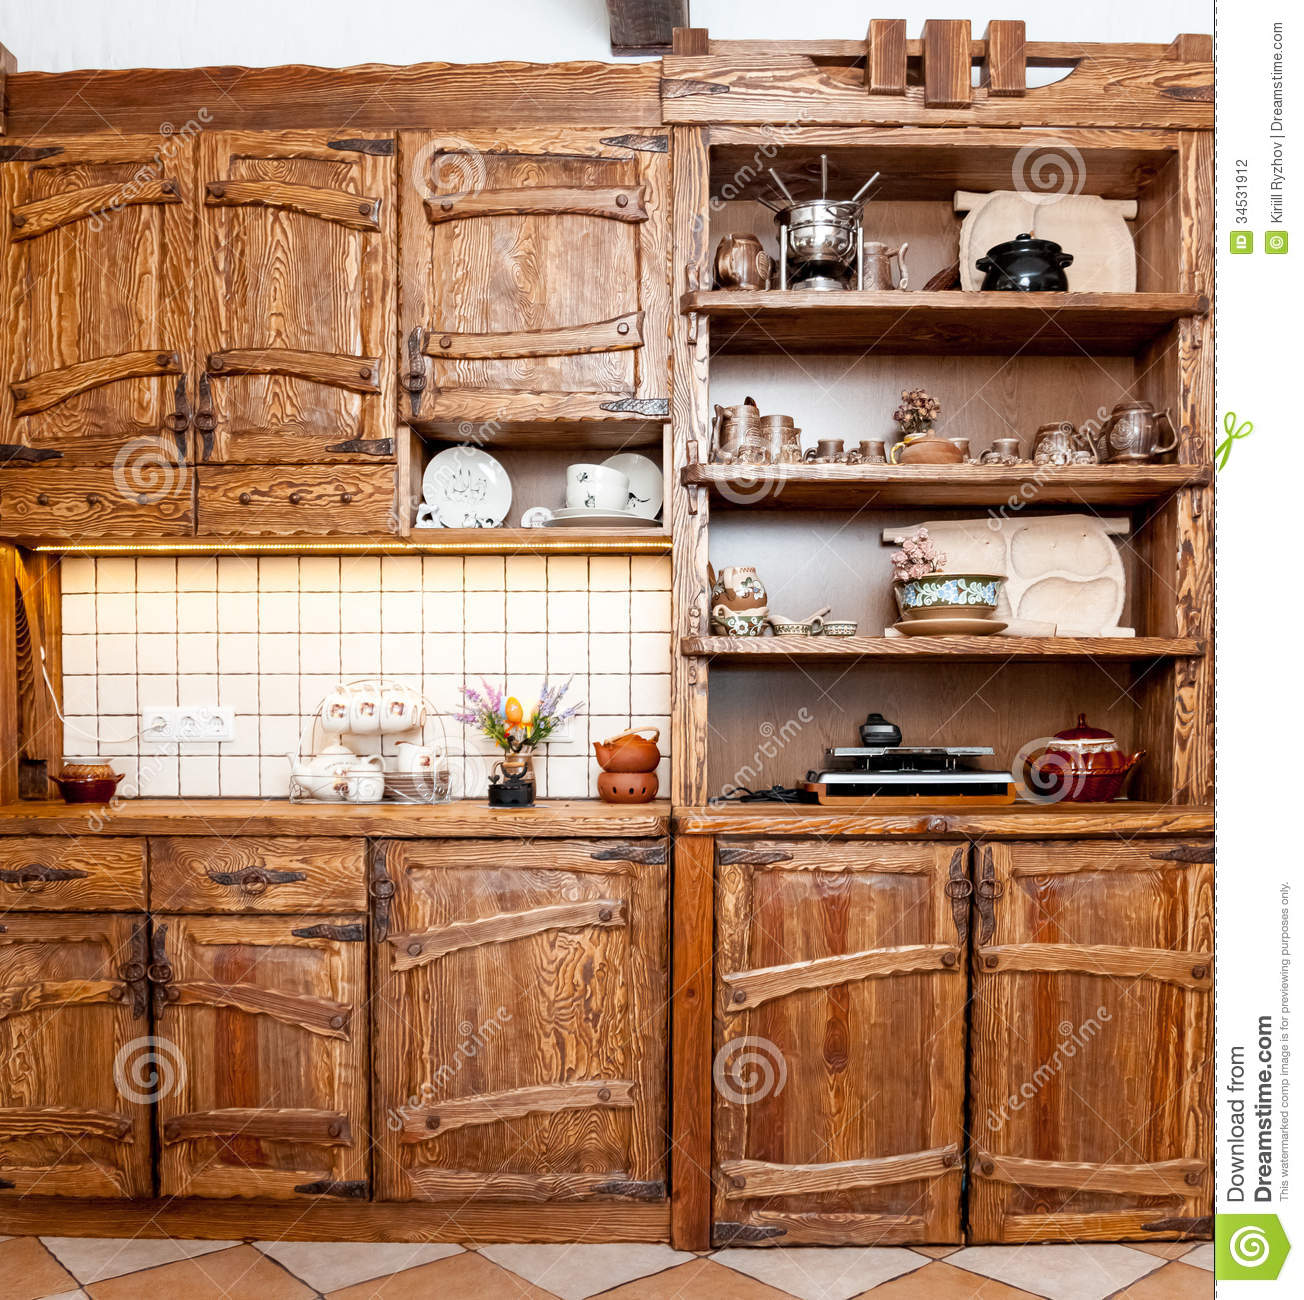 furniture for kitchen in country style stock photography